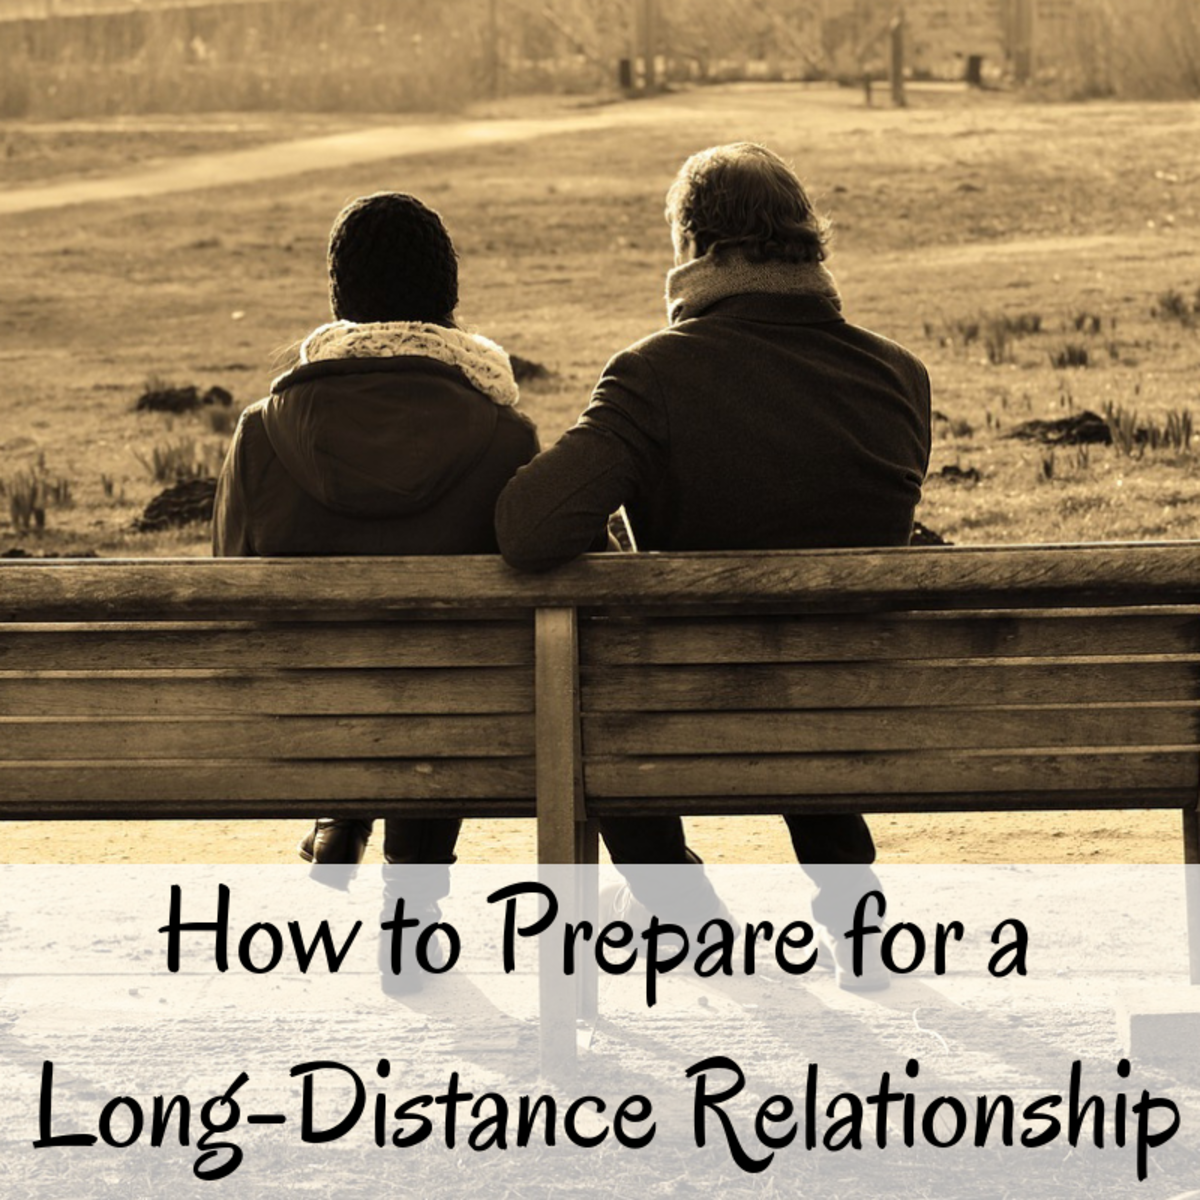 Preparing Yourself for a Long-Distance Relationship